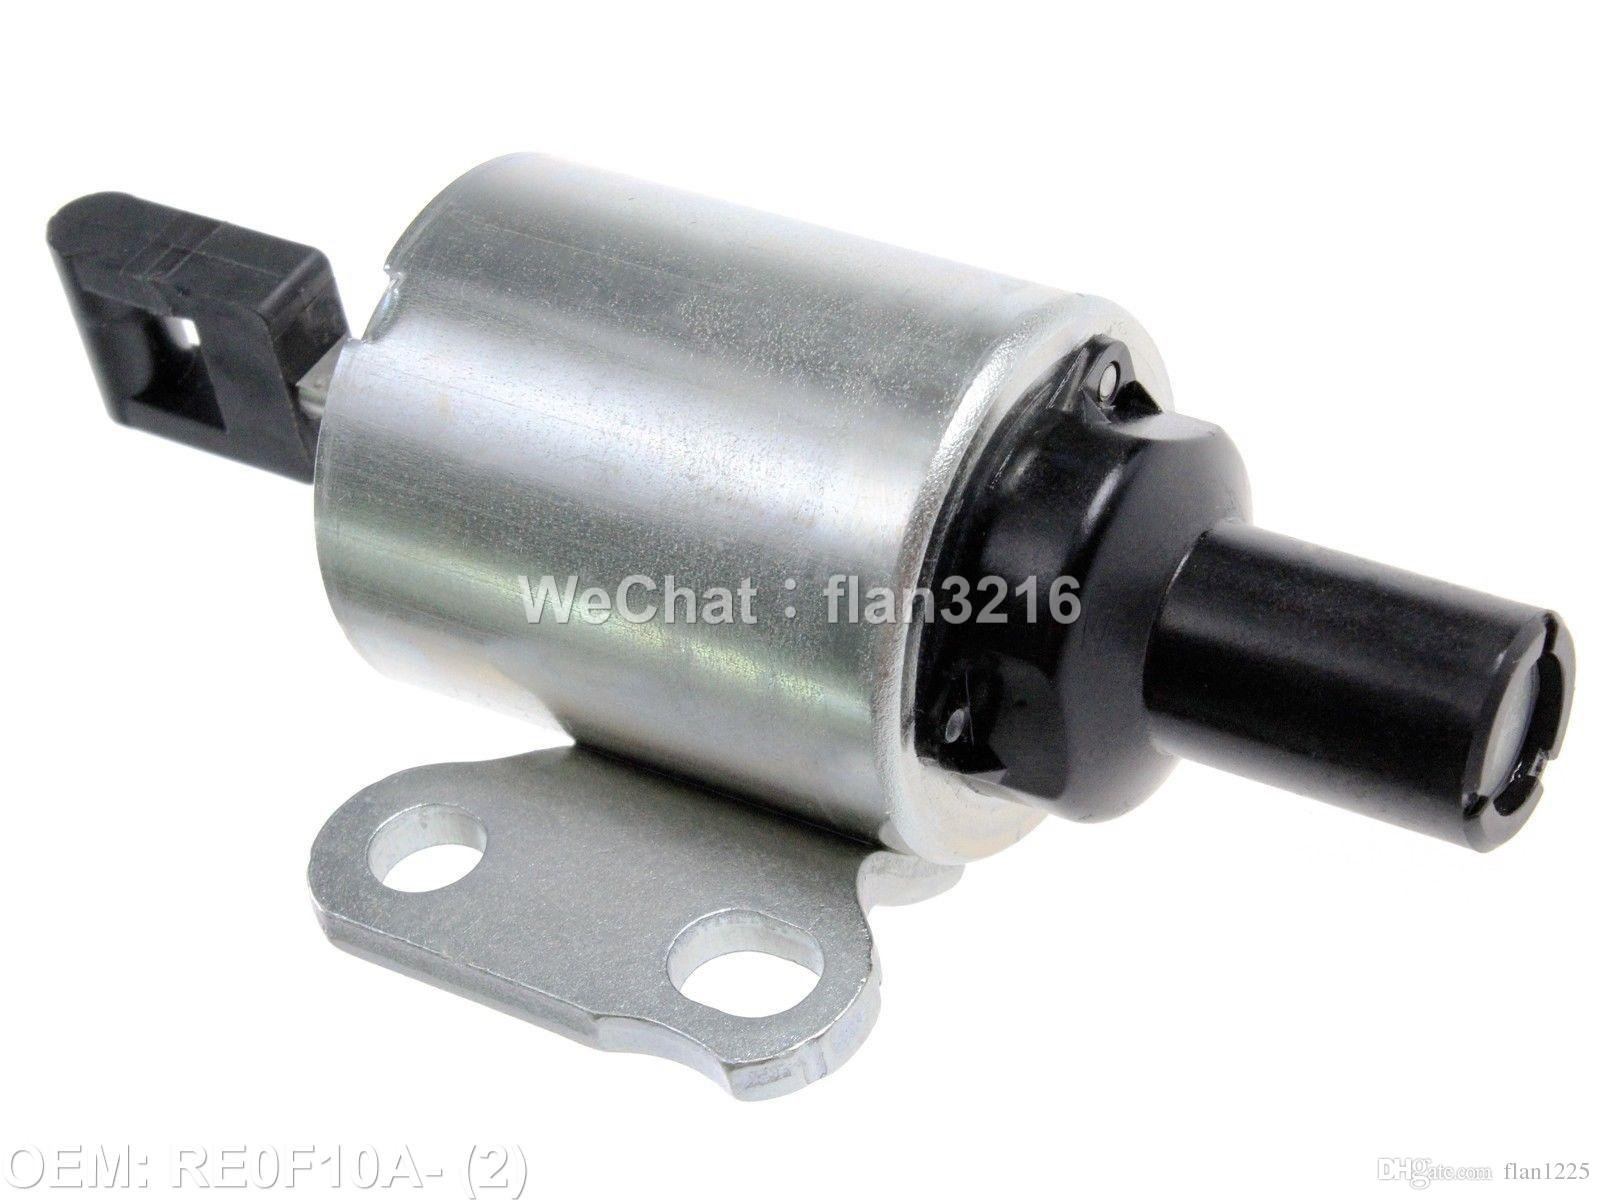 Jf011e Re0f10a Re0f10e Gearbox Stepper Motor Adapter Nissan Suzuki ...